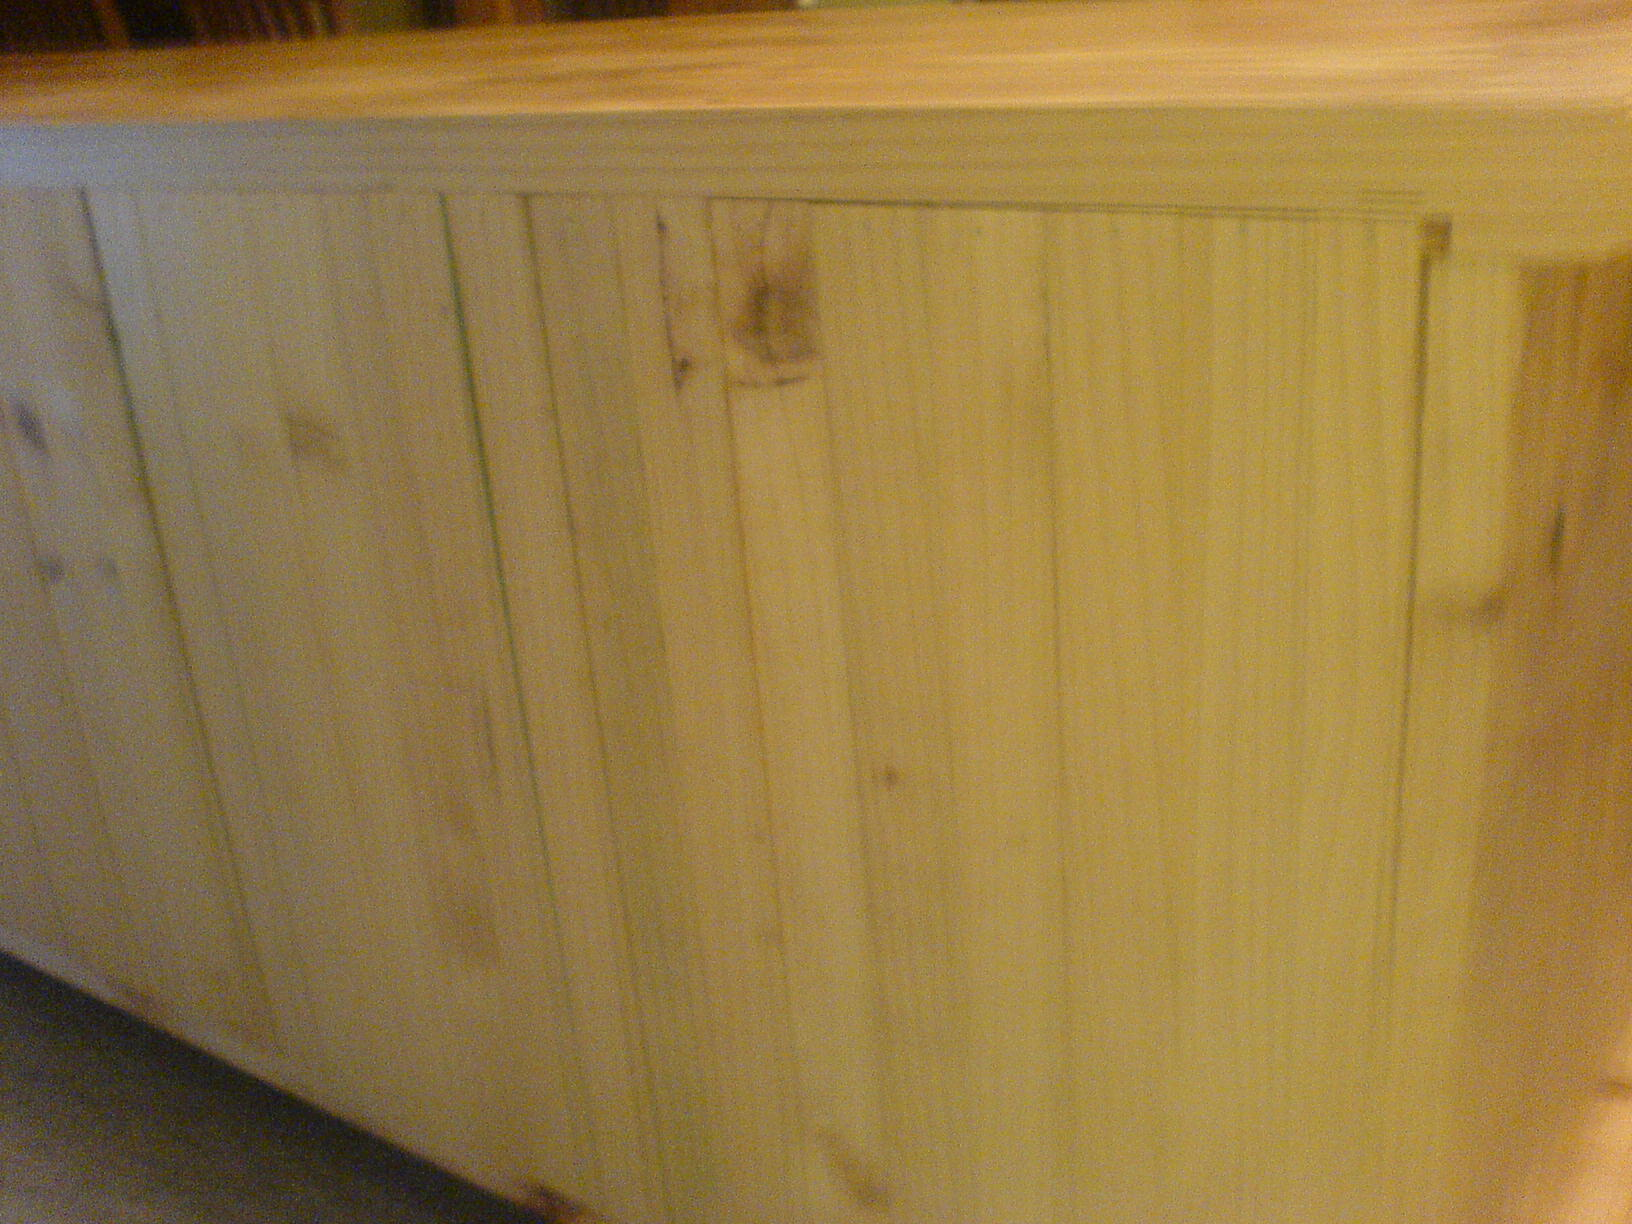 Pine Tongue And Groove Kitchen Cupboard Doors Kitchen Appliances